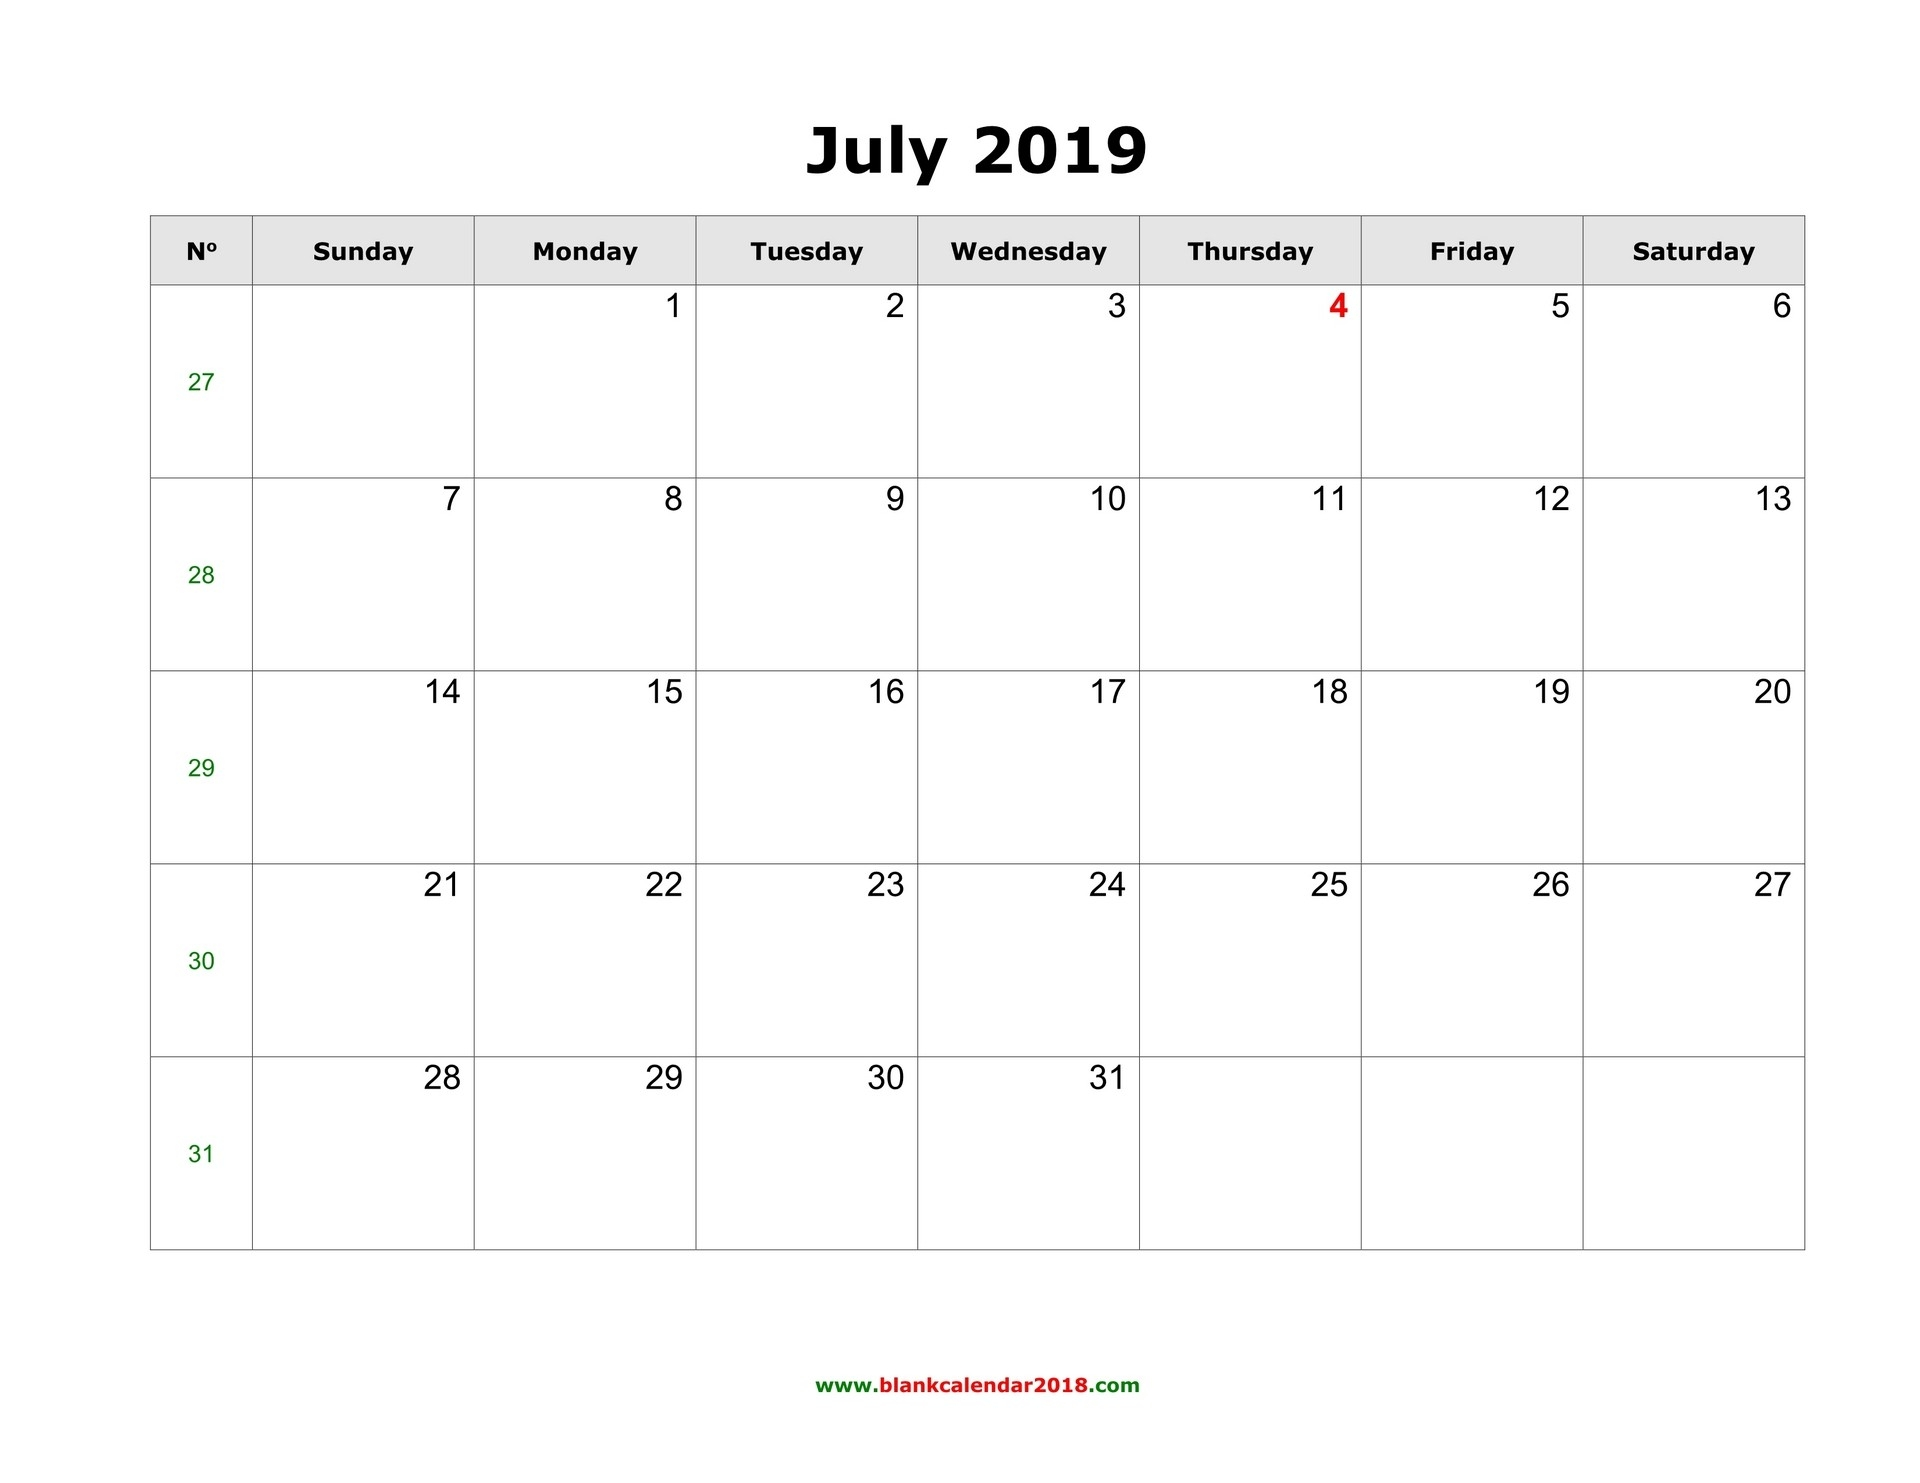 Blank Calendar For July 2019-Fill In The Blank July 2919 Calendar